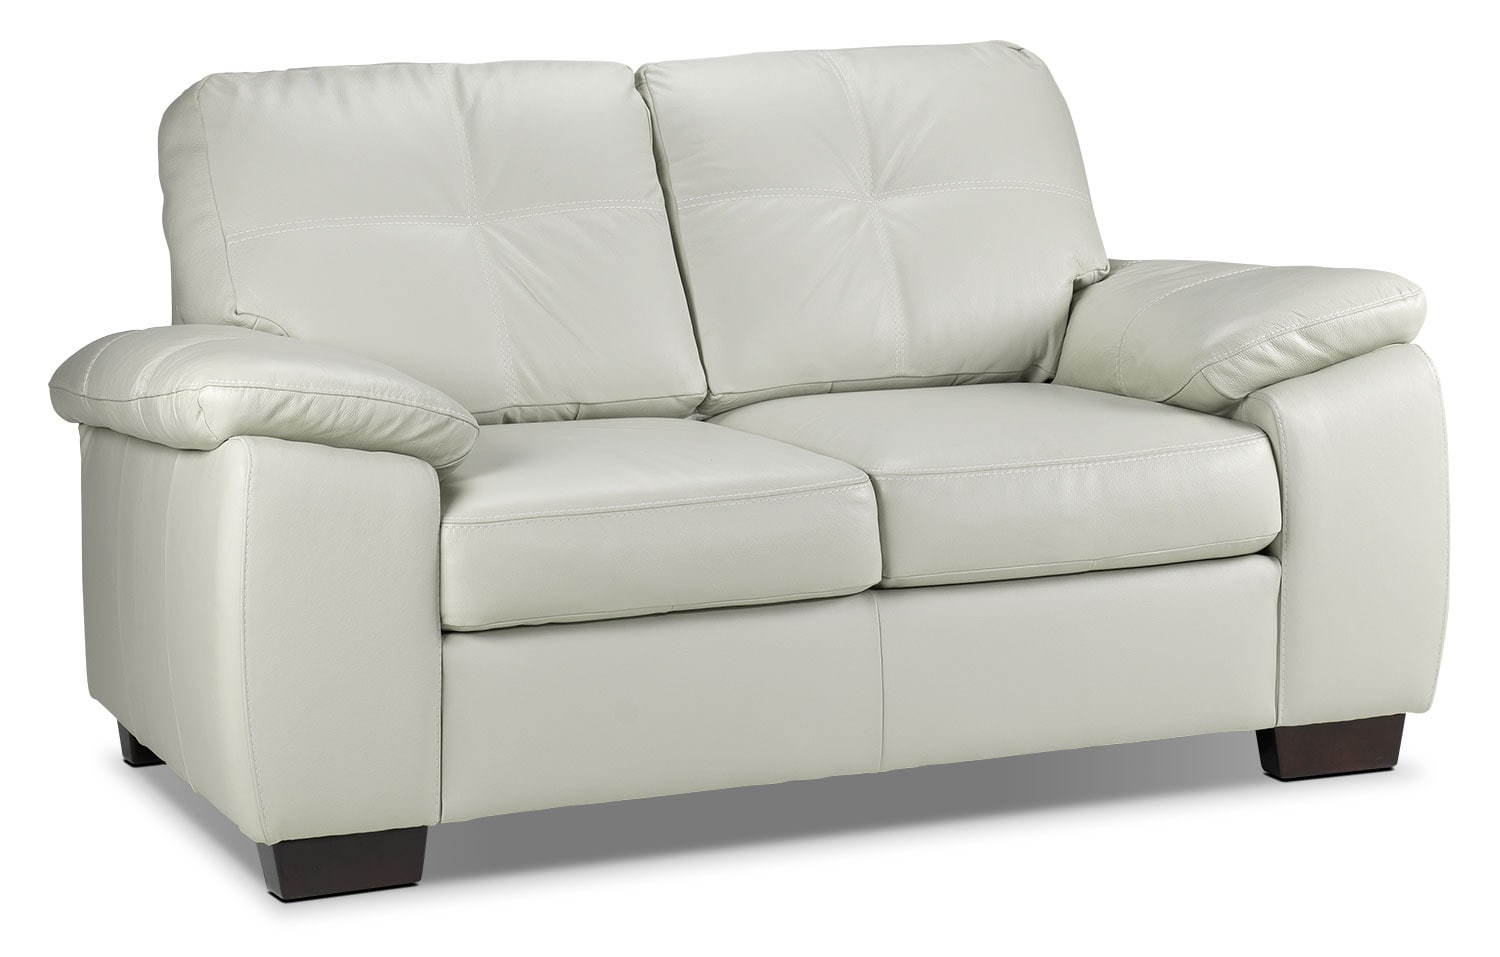 Naples Loveseat - Smoke